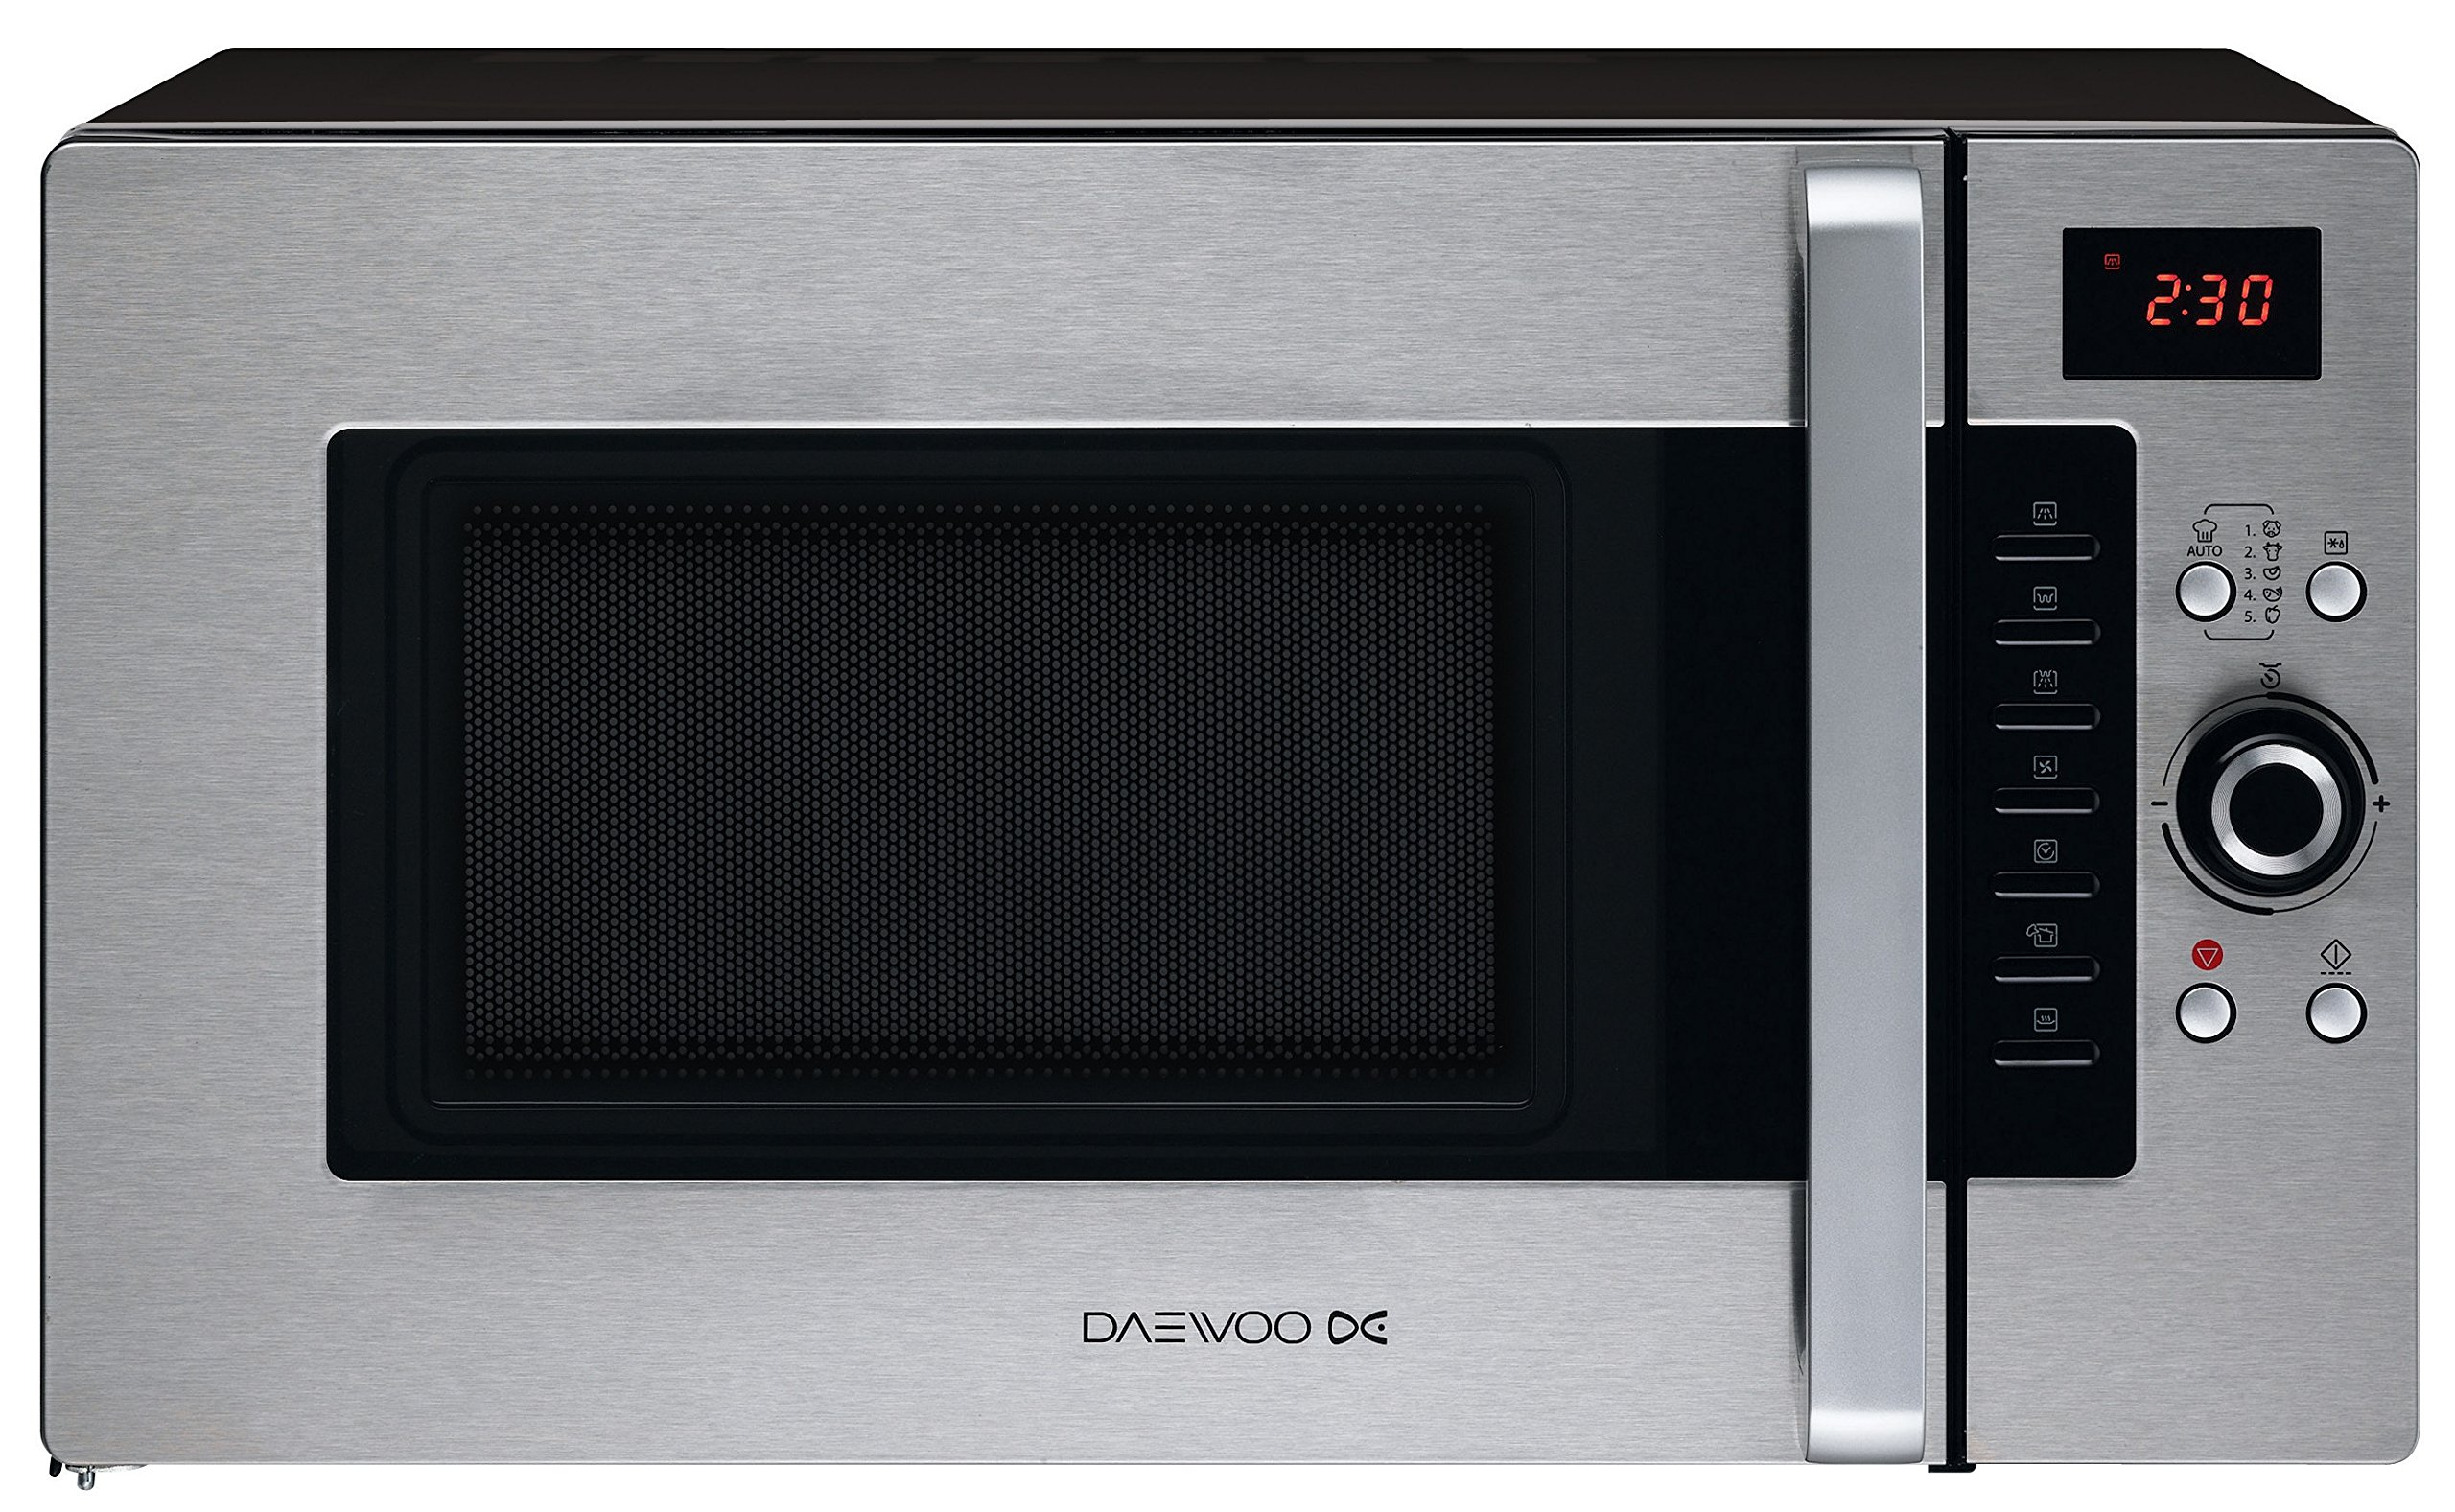 Daewoo KOC-9Q4DS Convection Microwave Oven 1.0 Cu. Ft., 900W | Stainless Steel by Daewoo